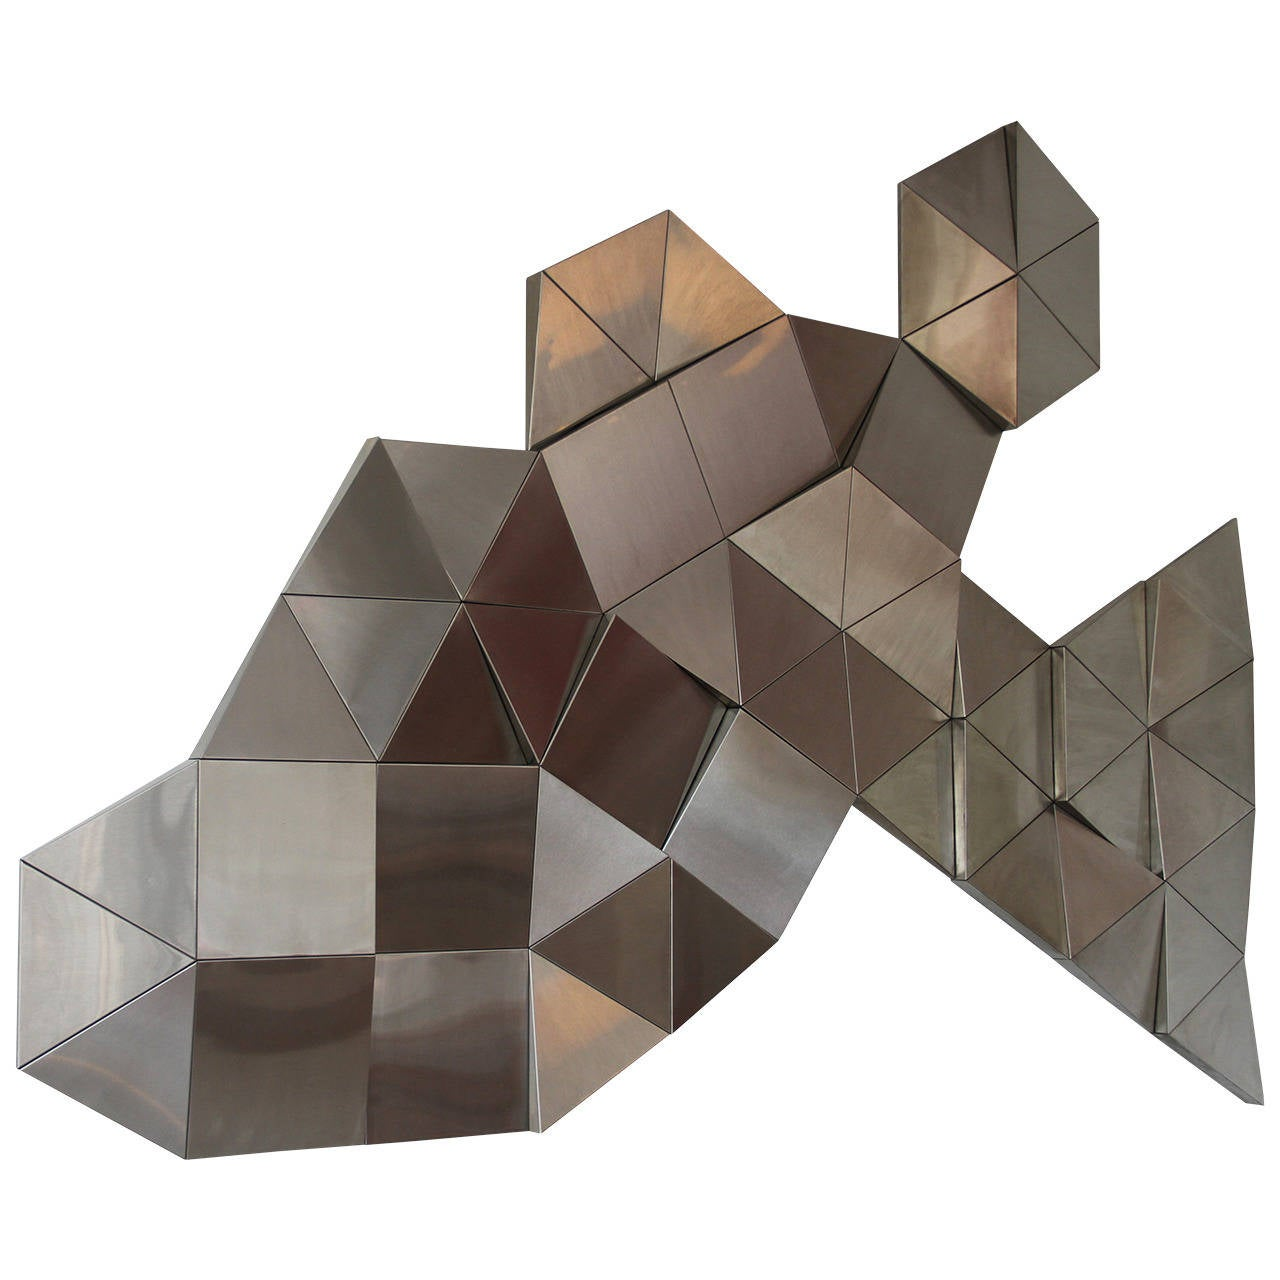 1970 stainless steel modular wall sculpture at 1stdibs for Stainless steel wall art